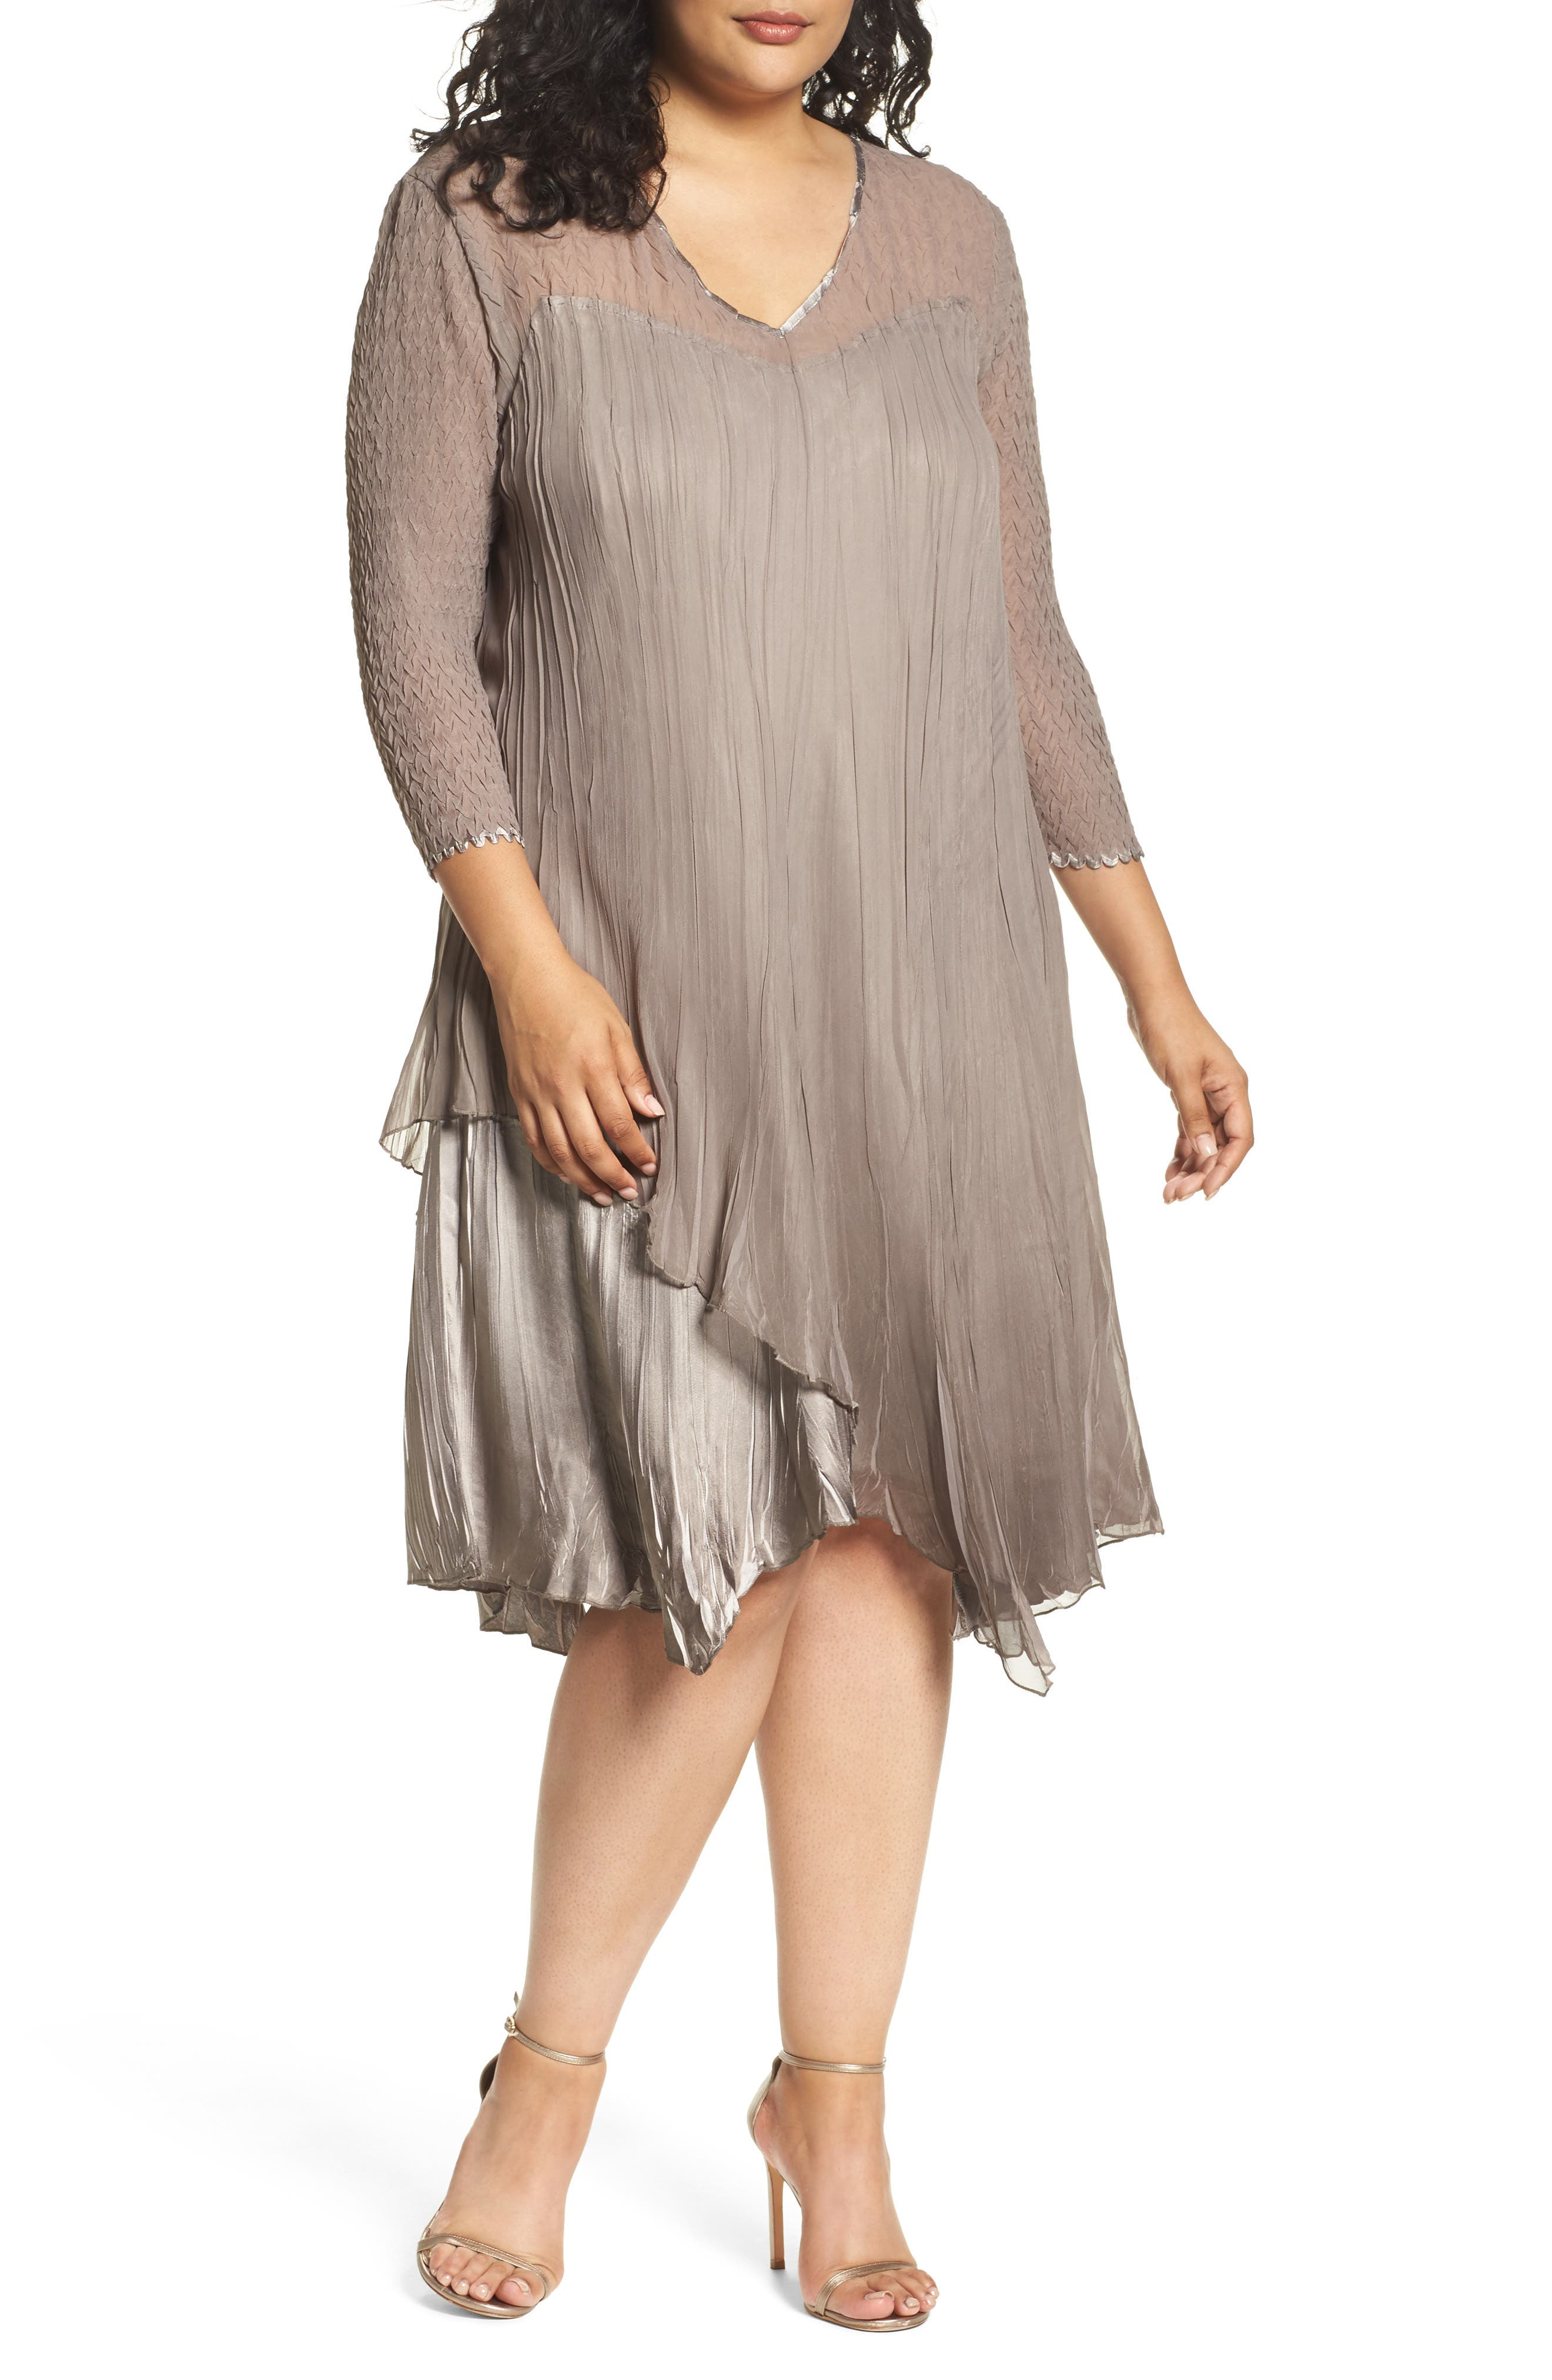 Alternate Image 1 Selected - Komarov Tiered Dress (Plus Size)